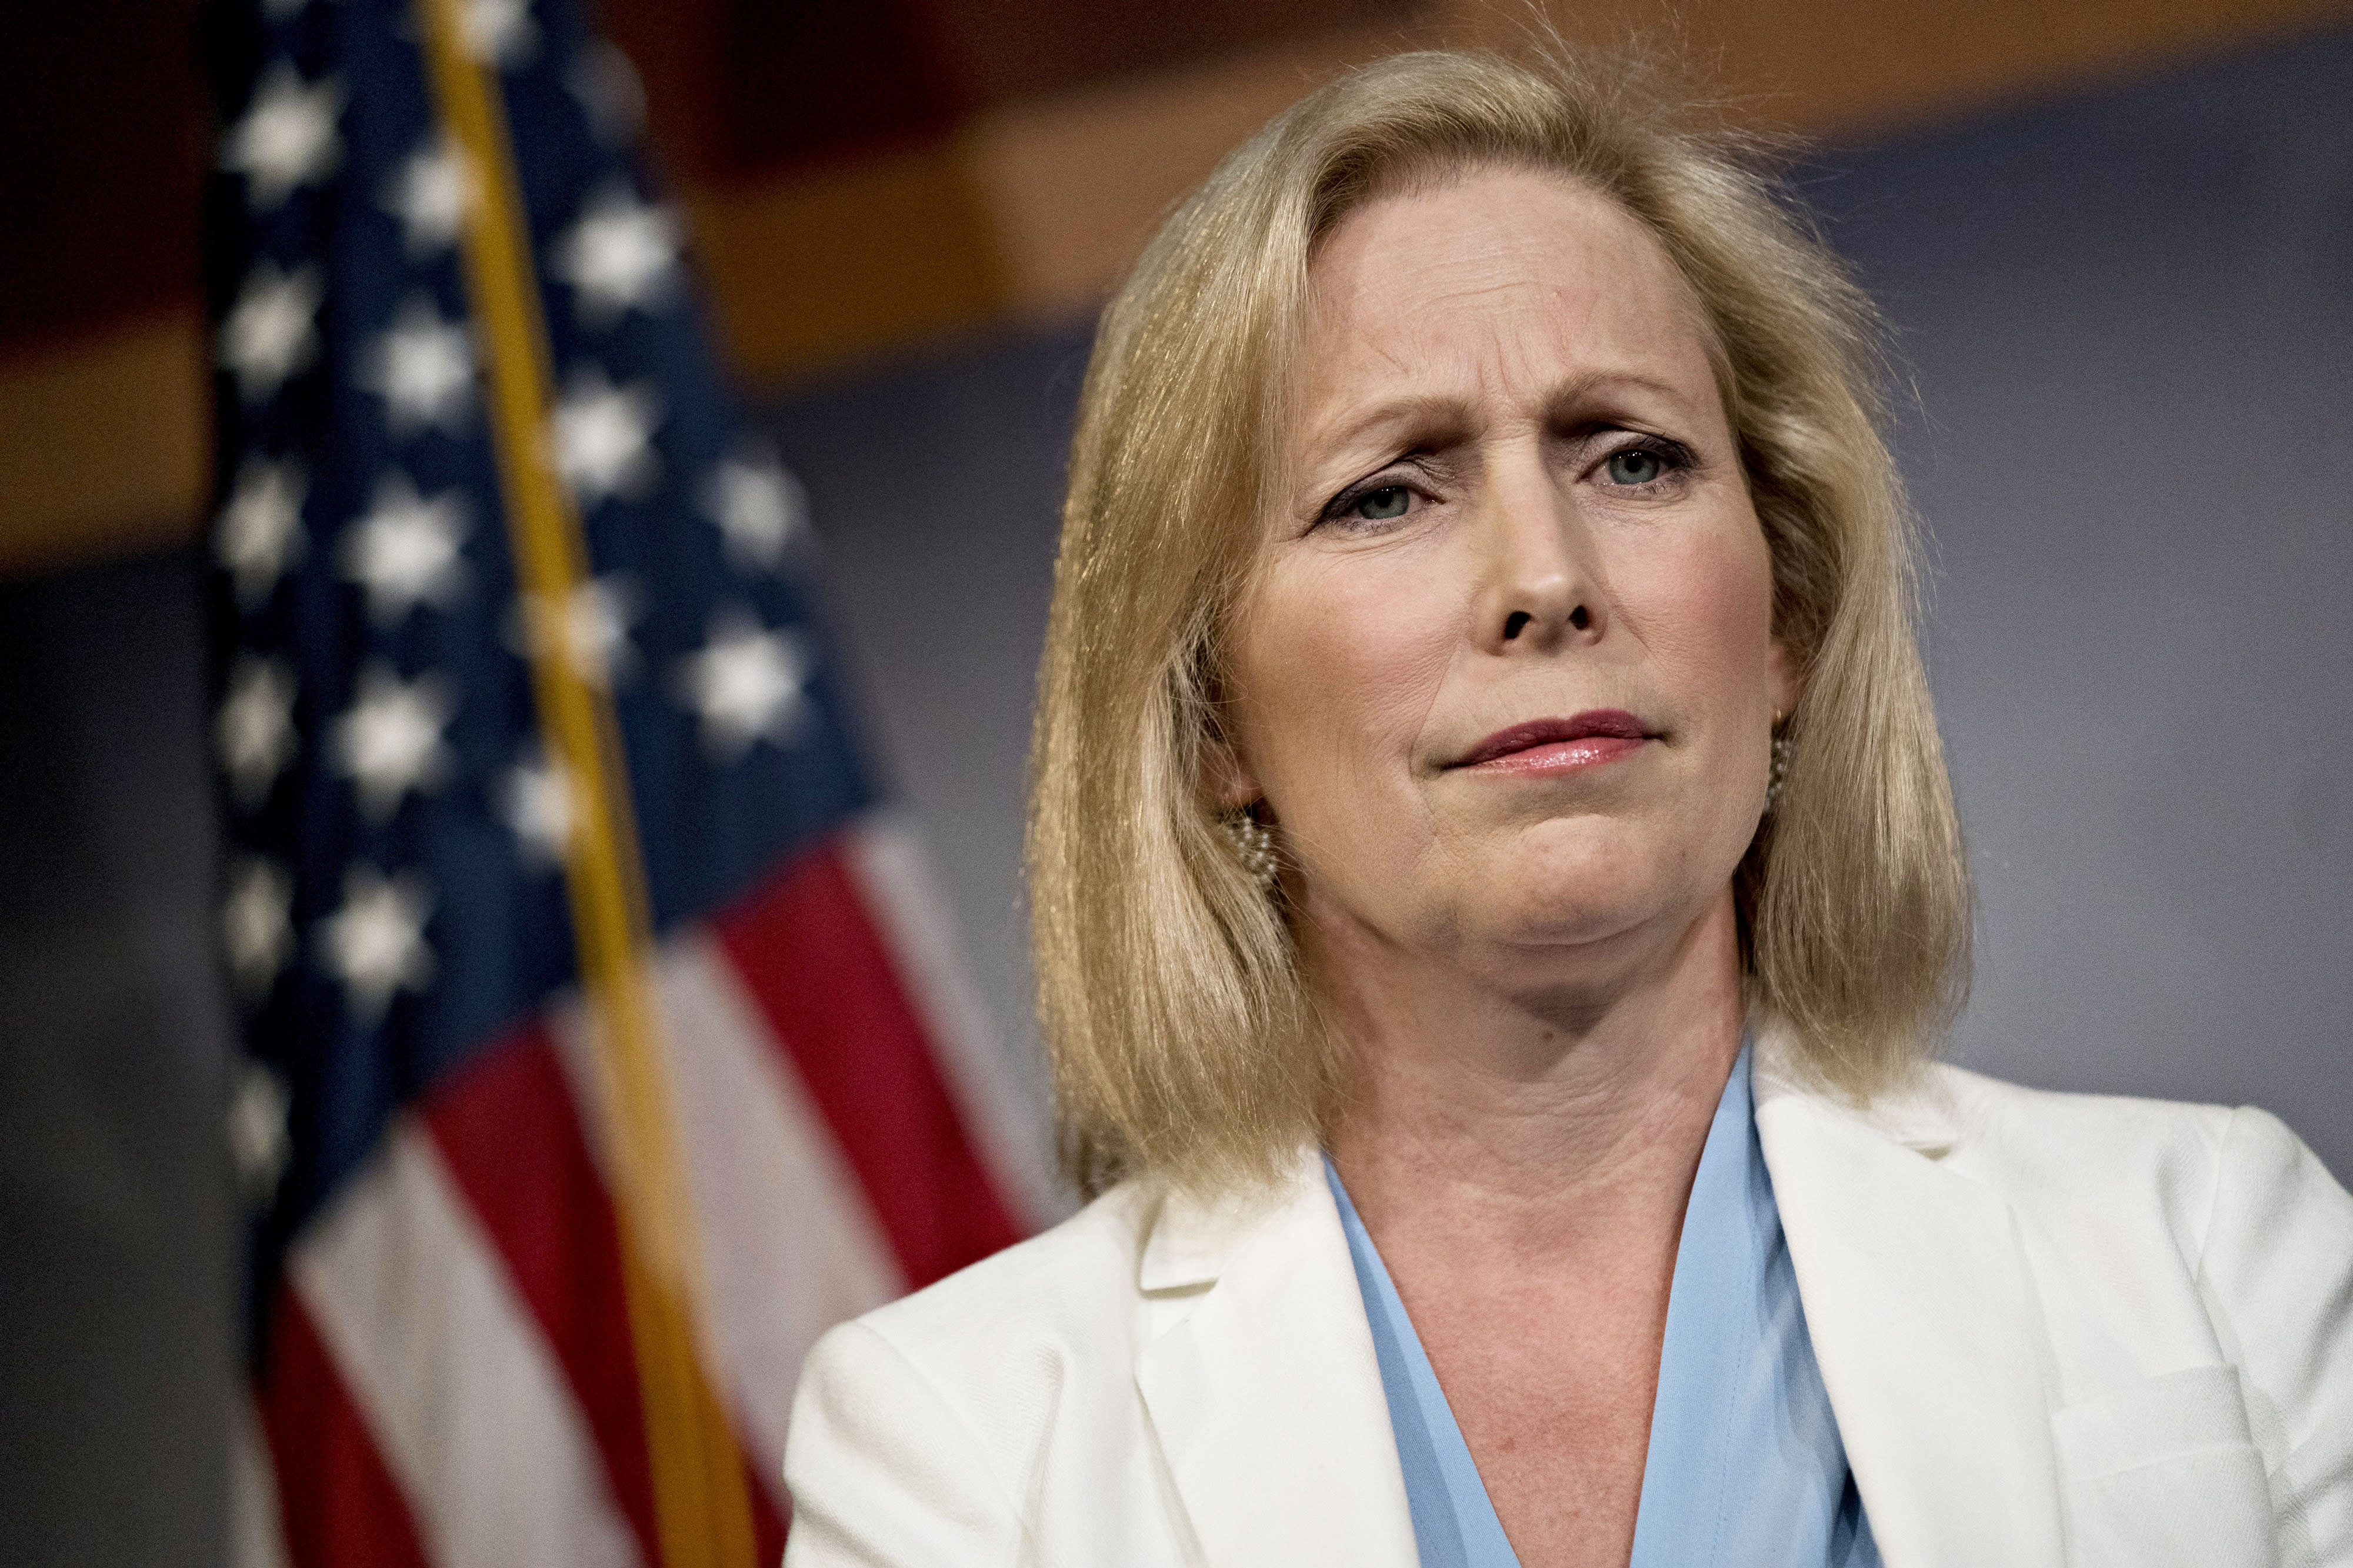 Kirsten Gillibrand has dropped out of the 2020 presidential race